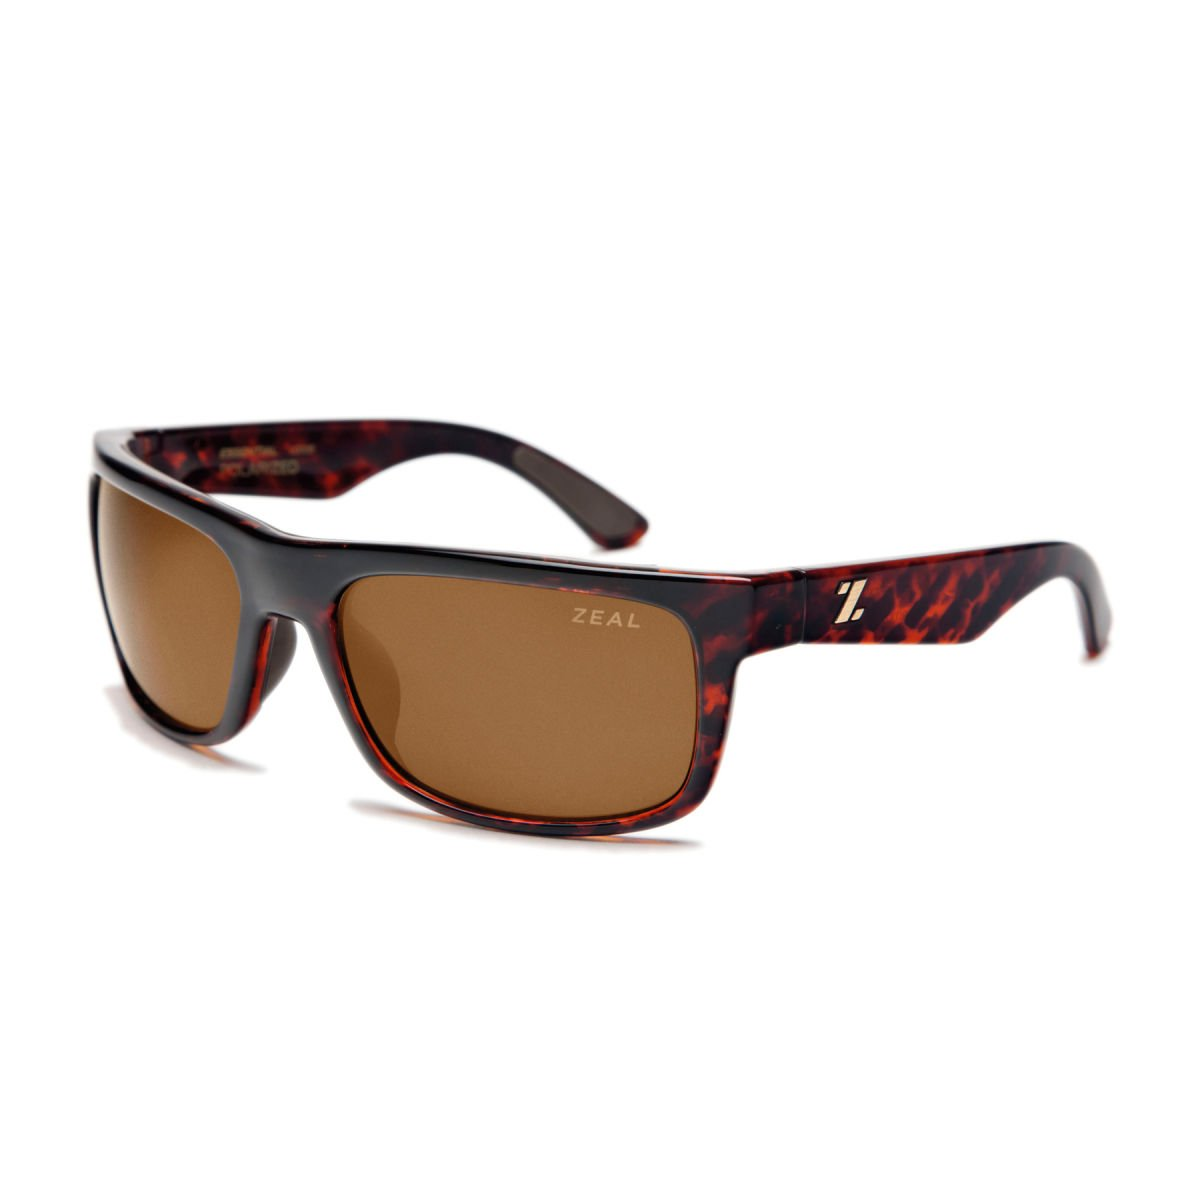 2b4b8555431 Amazon.com  Zeal Optics Unisex Essential Polarized Brown + Olive W   Copper  Polarized Lens Sunglasses One Size  Sports   Outdoors